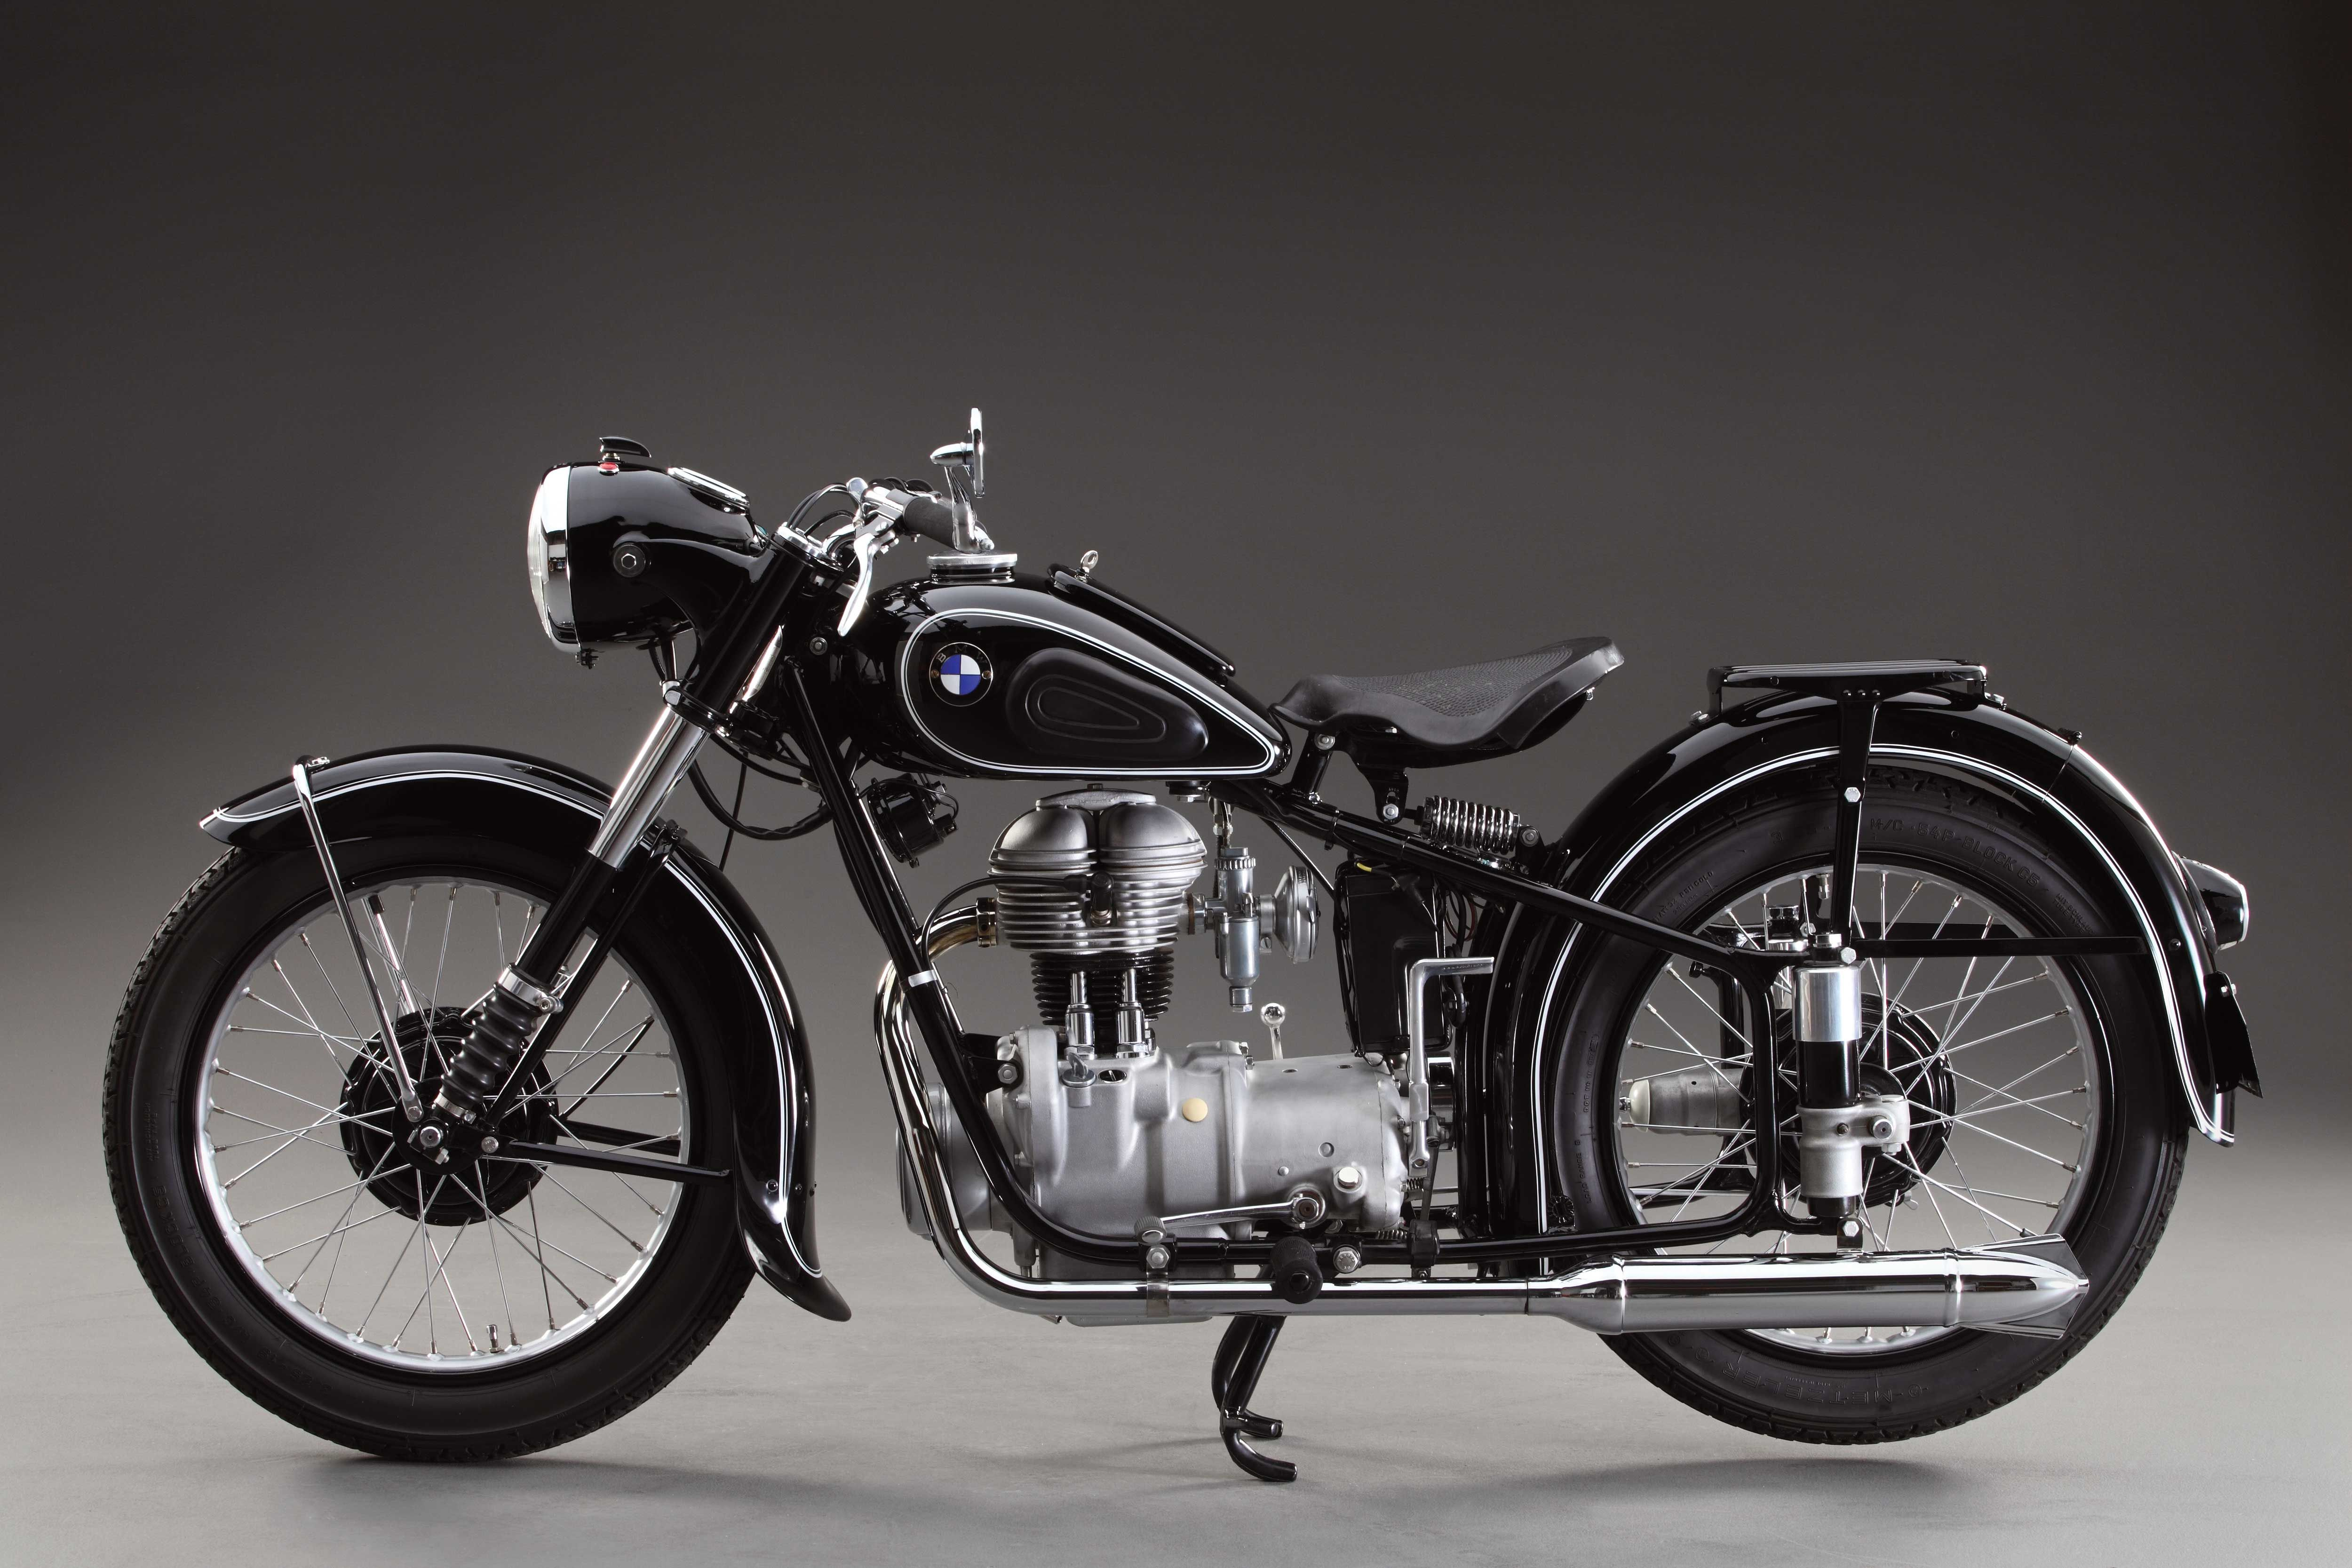 1953 bmw r25 motorcycle motorbike motorcycles pinterest. Black Bedroom Furniture Sets. Home Design Ideas